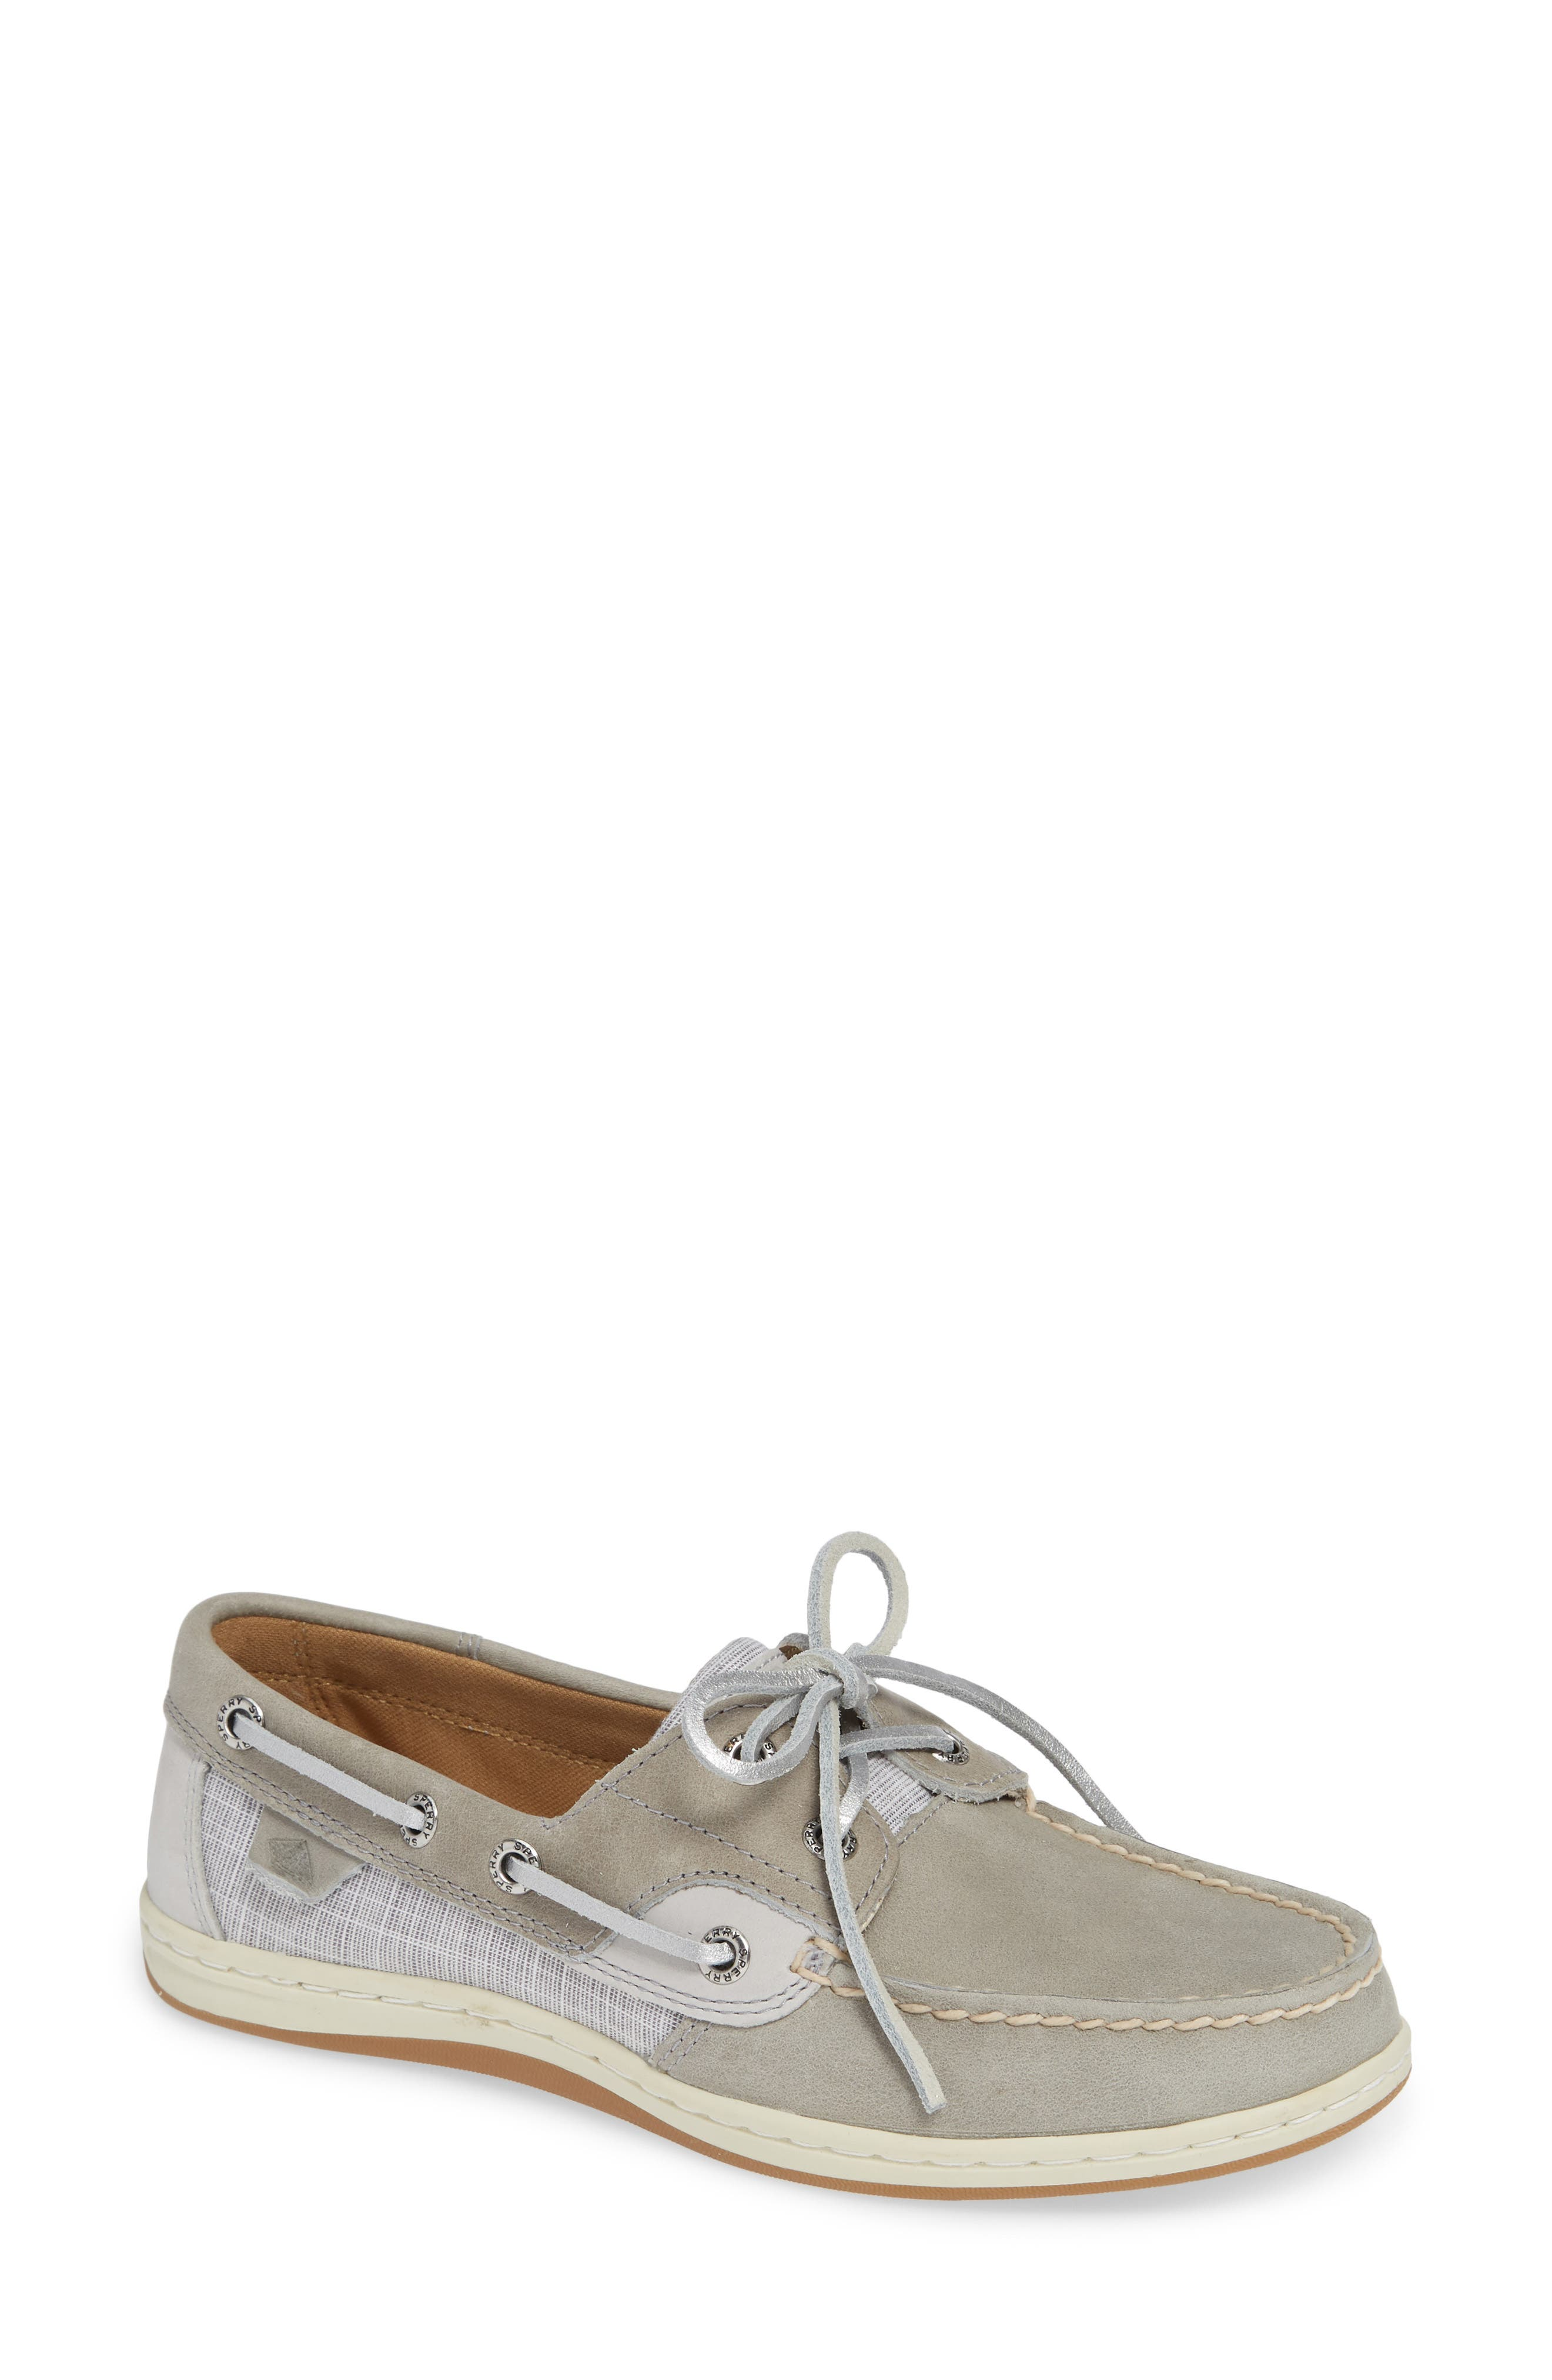 Top-Sider Koifish Loafer,                             Main thumbnail 1, color,                             GREY LEATHER